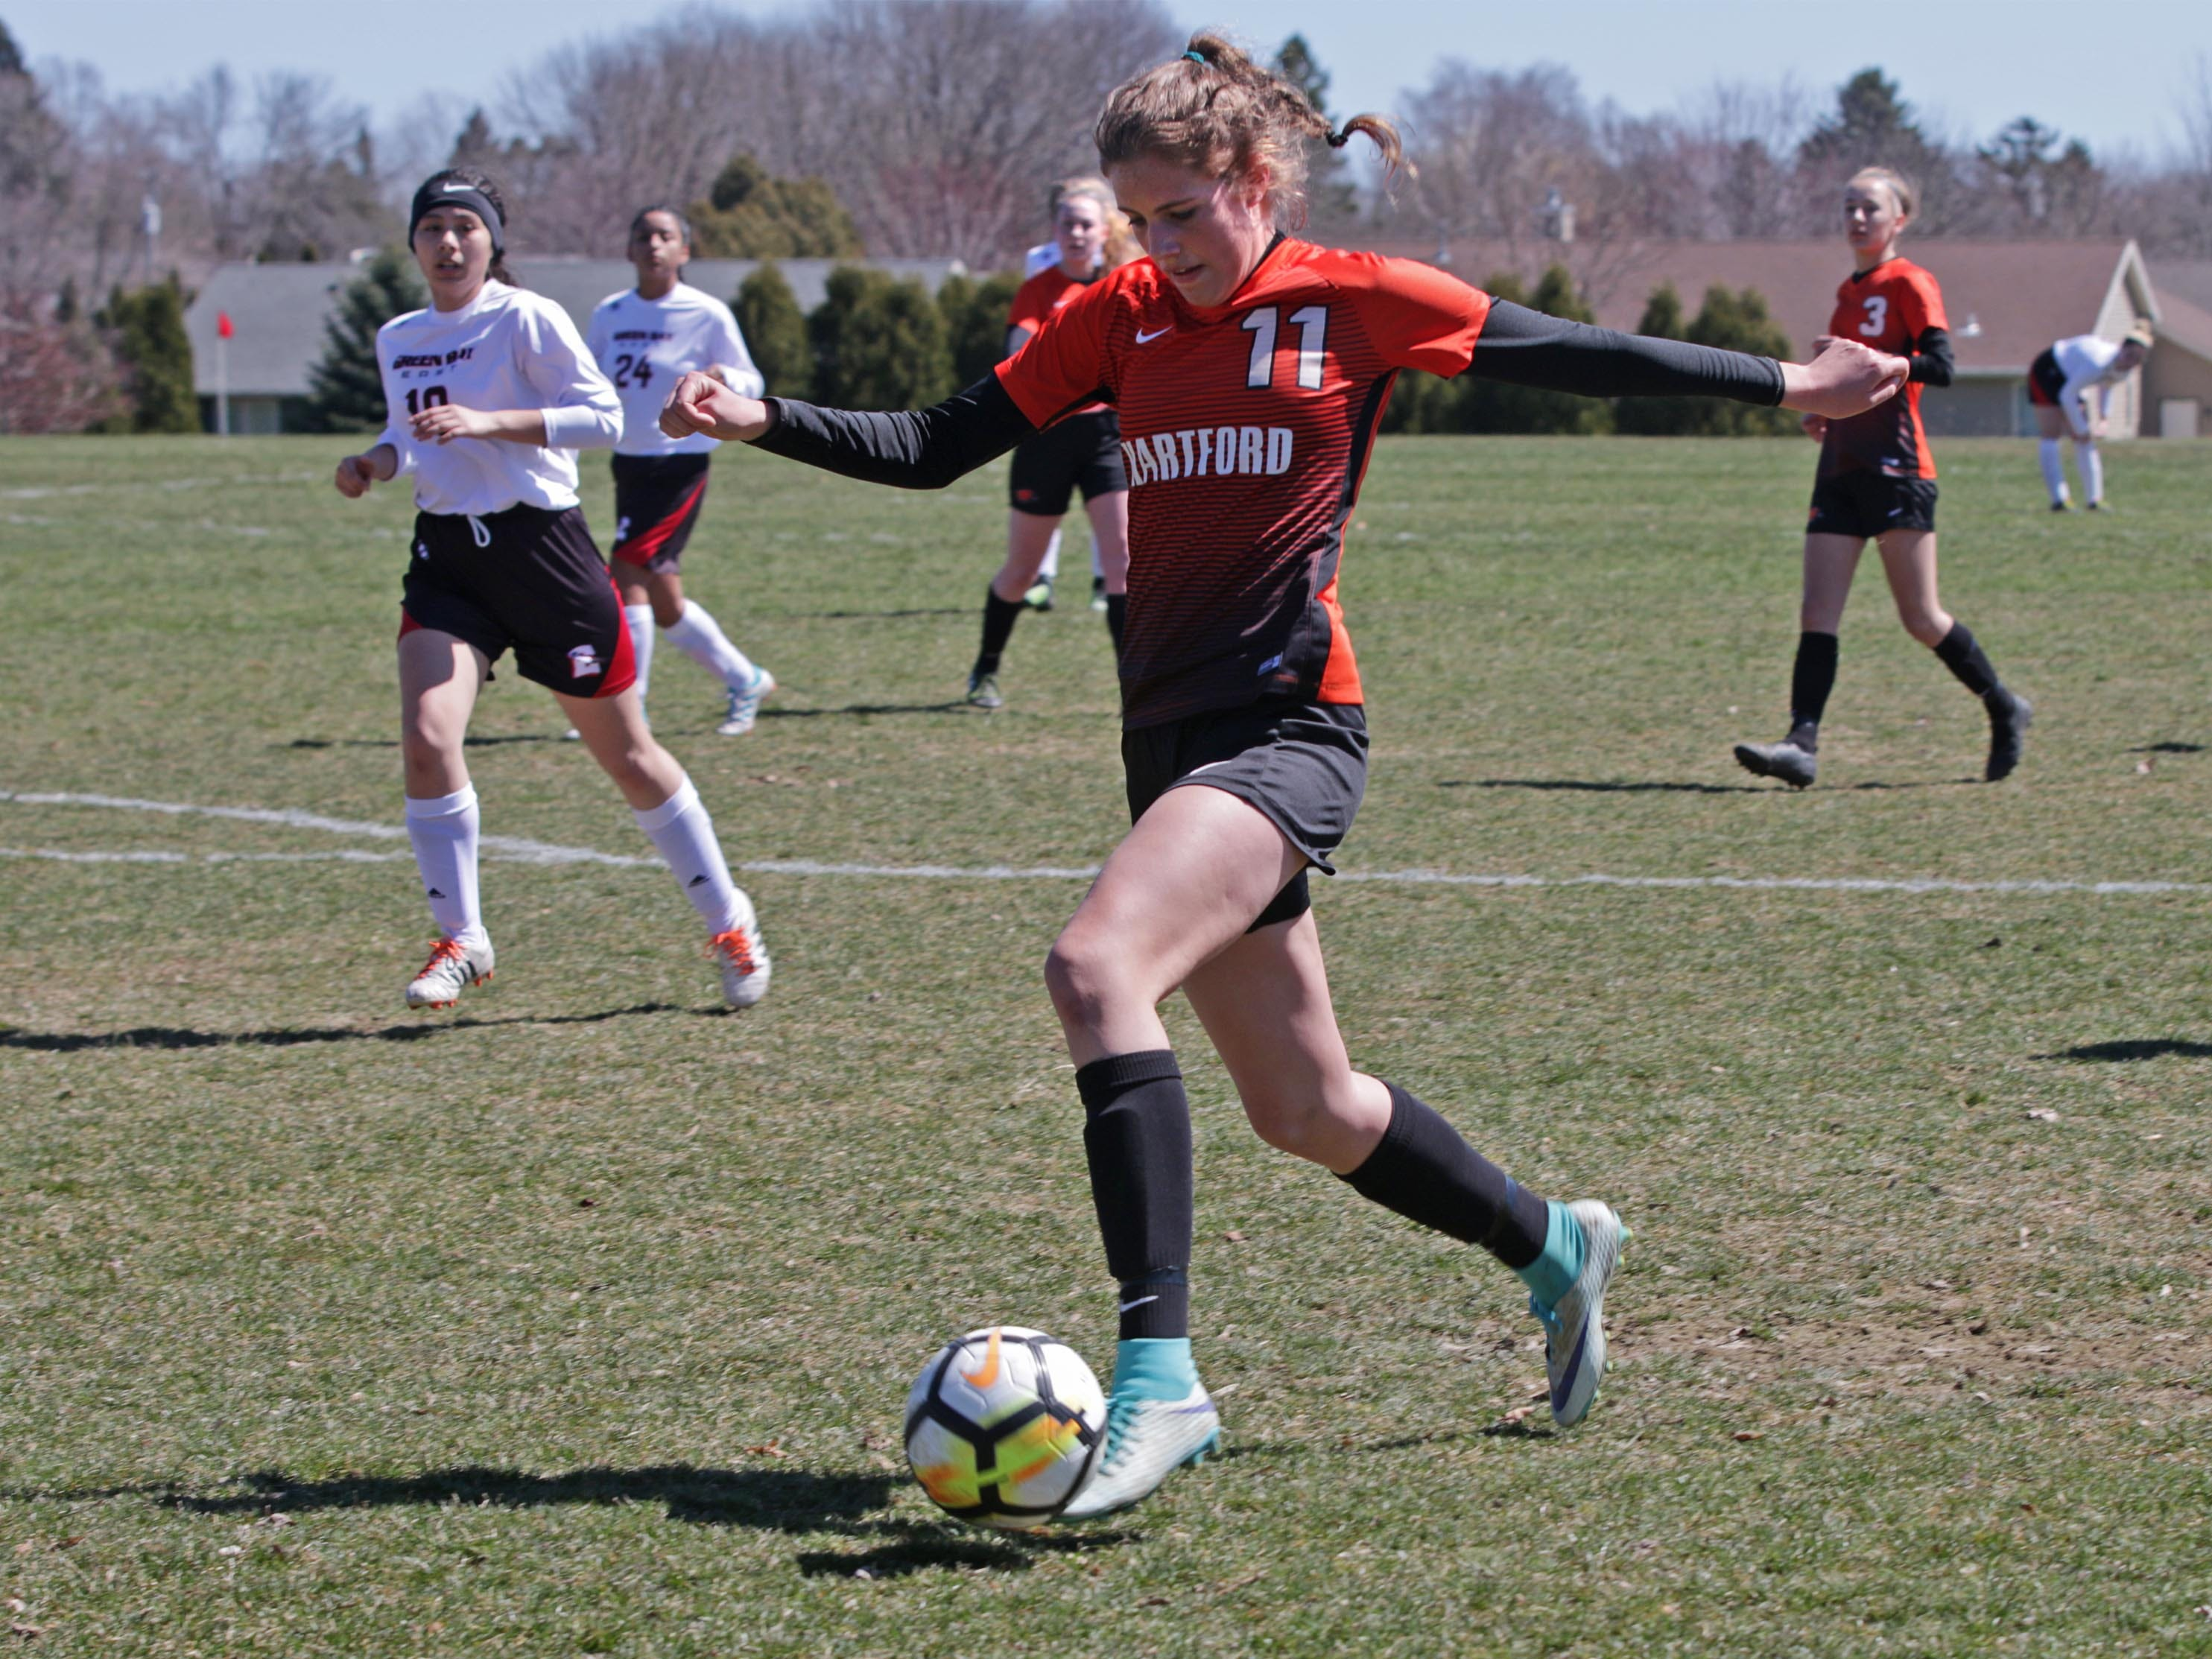 Hartford's Abby Hoffmann (11) moves the ball against Green Bay East at the Sheboygan South Soccer tournament, Saturday, April 20, 2019, in Sheboygan, Wis.